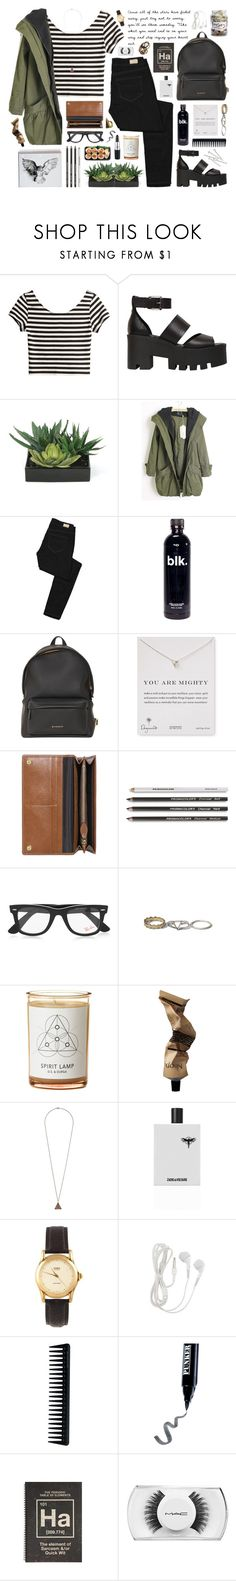 """Spirit in the Sky"" by ctodtims ❤ liked on Polyvore featuring H&M, Windsor Smith, Lux-Art Silks, Paige Denim, Givenchy, Dogeared, Mulberry, Bamford, Ray-Ban and Abercrombie & Fitch"